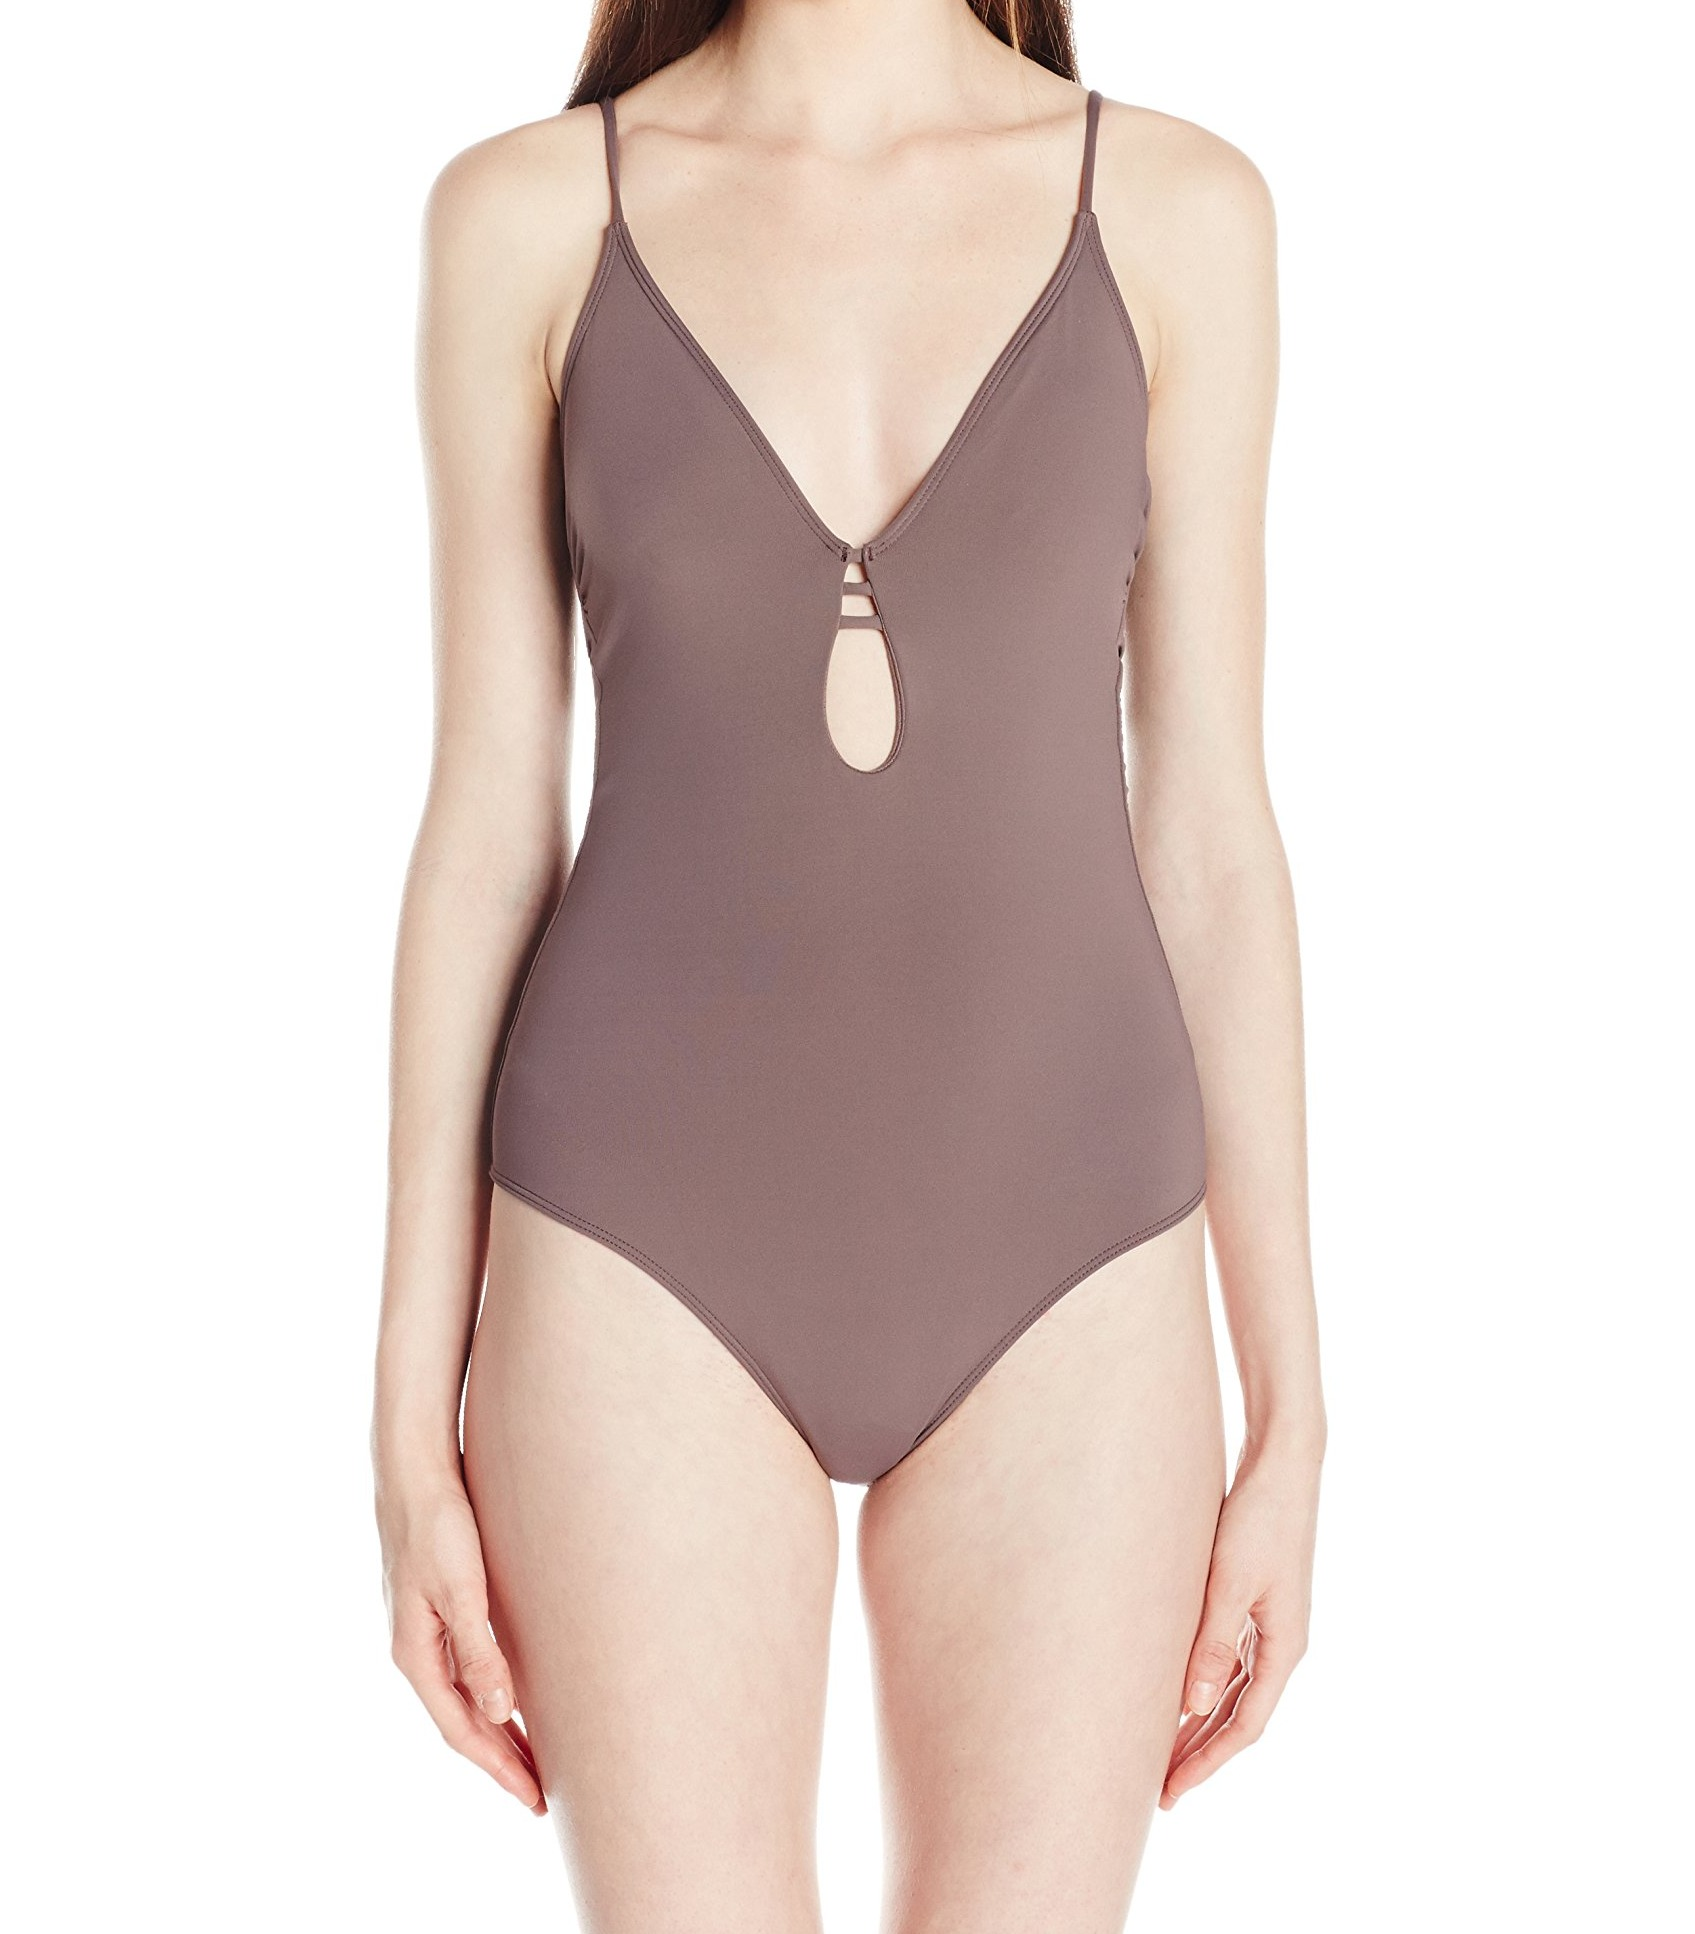 e943b7fdac We have more O'Neill in Size L - Click Here Click to see all Womens Swimwear  in Size L